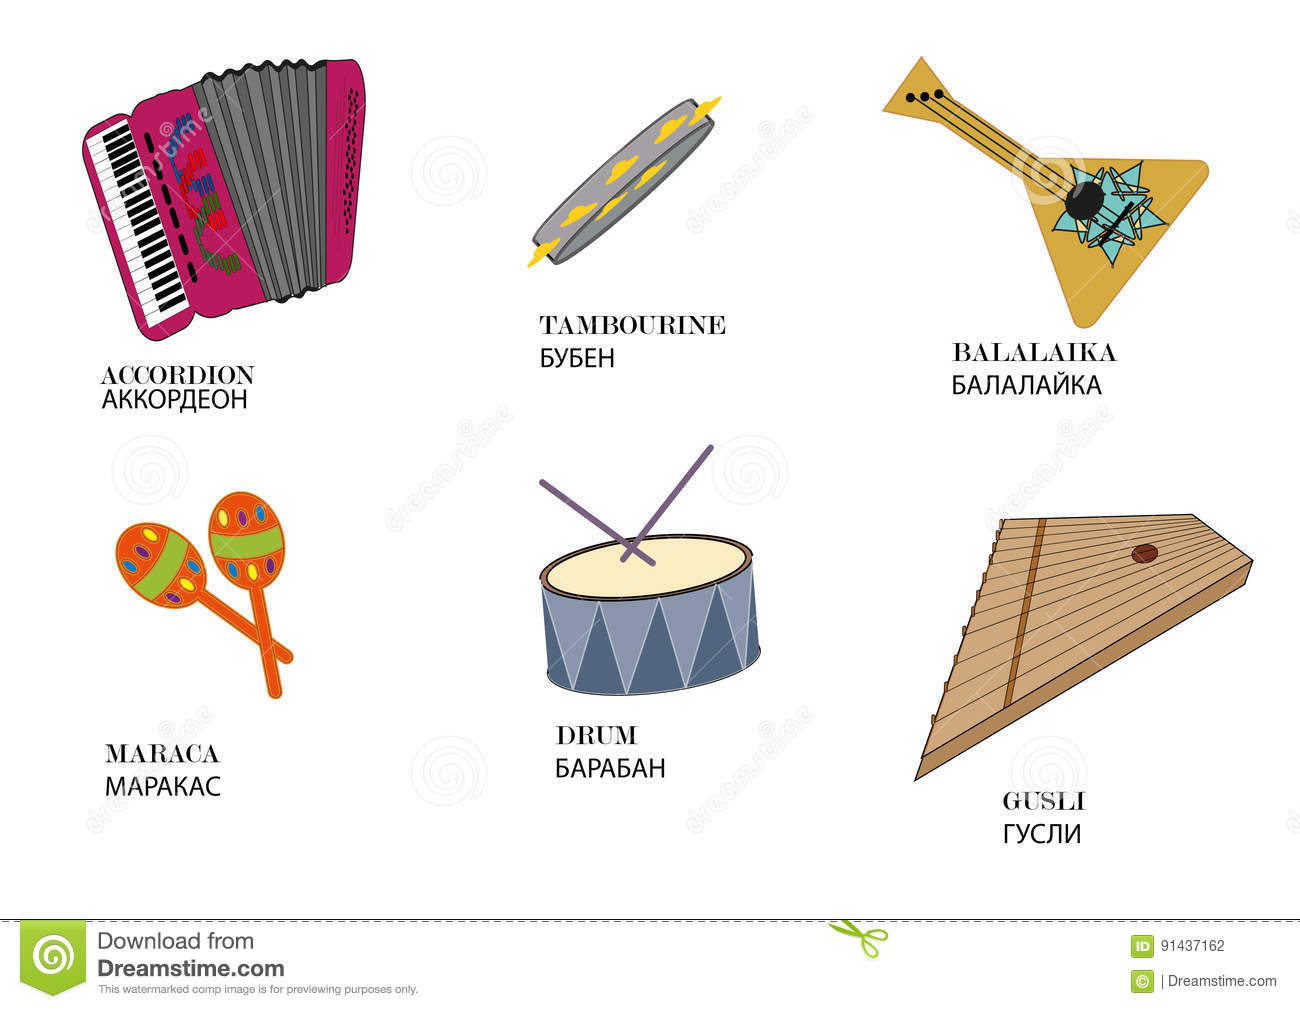 Russian Folk Musical Instruments With The Name Of The